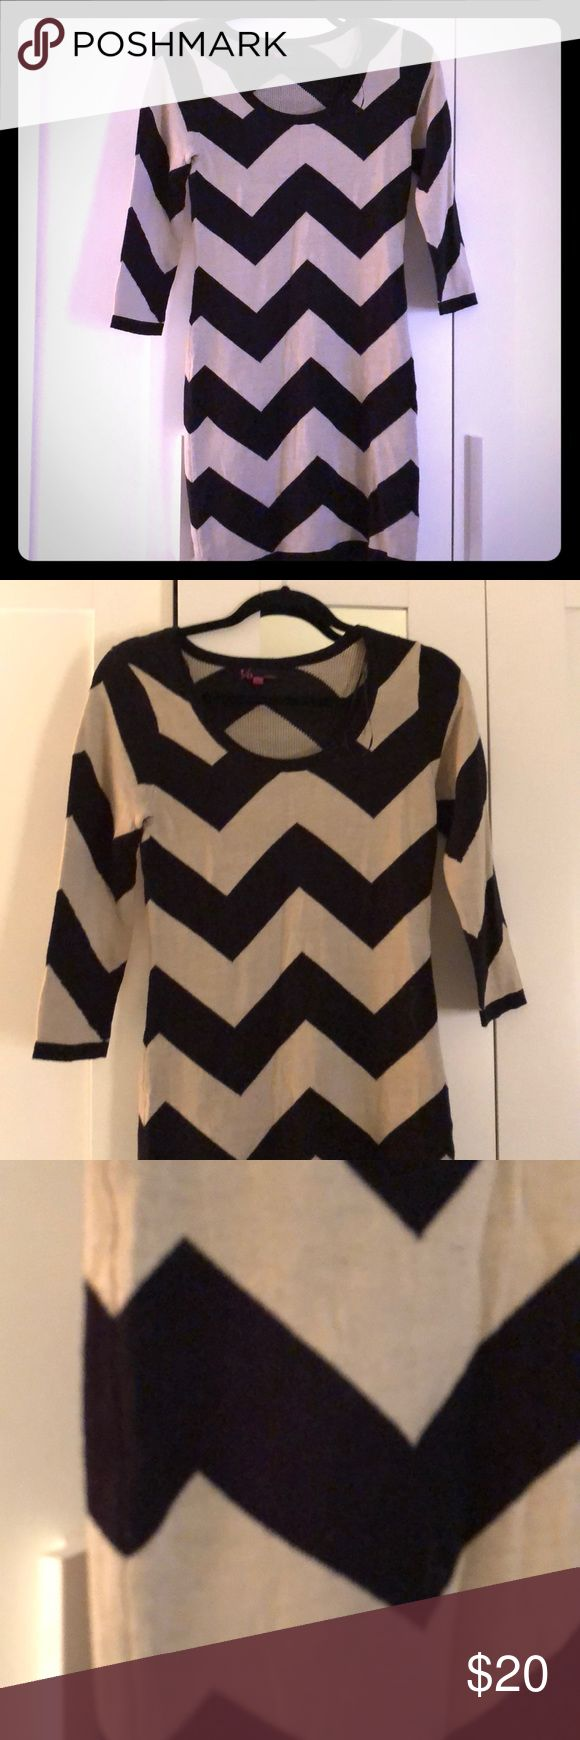 Cream/tan and black chevron sweater dress Cute and comfortable sweater dress! Dresses Long Sleeve